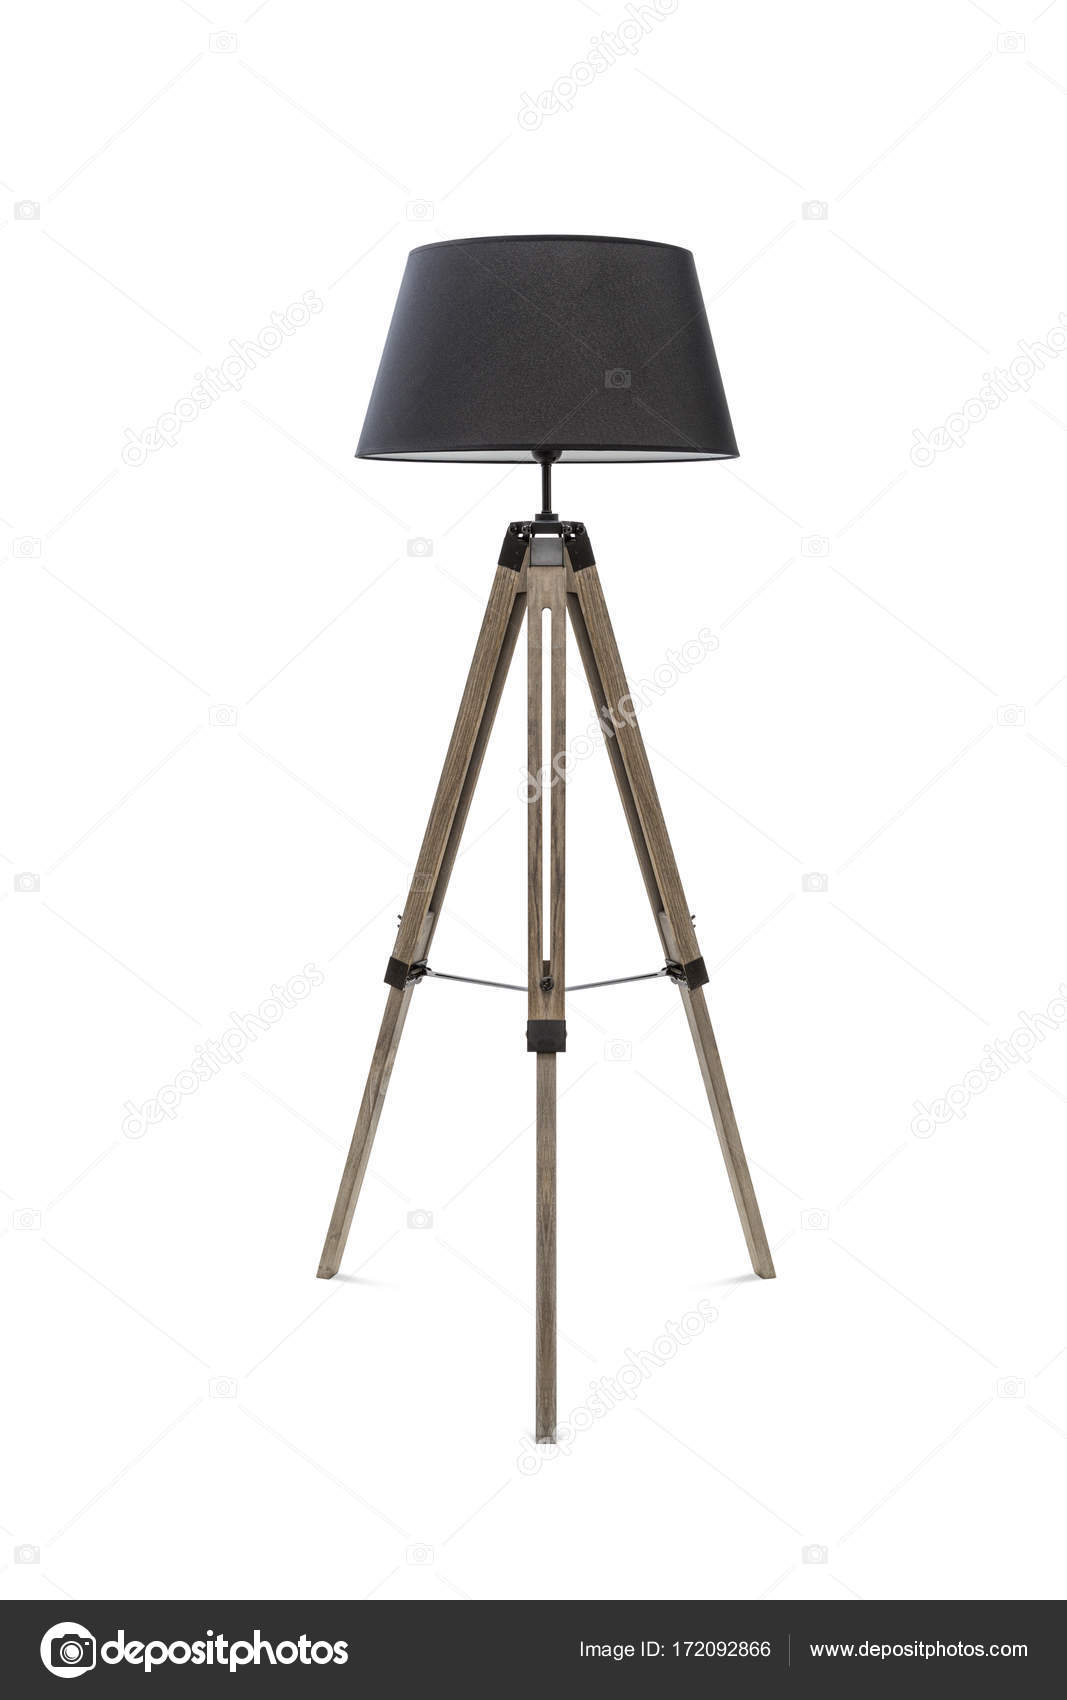 depositphotos 172092866 stock photo floor lamp for three wooden 5 Incroyable Lampe Trois Pieds Zzt4